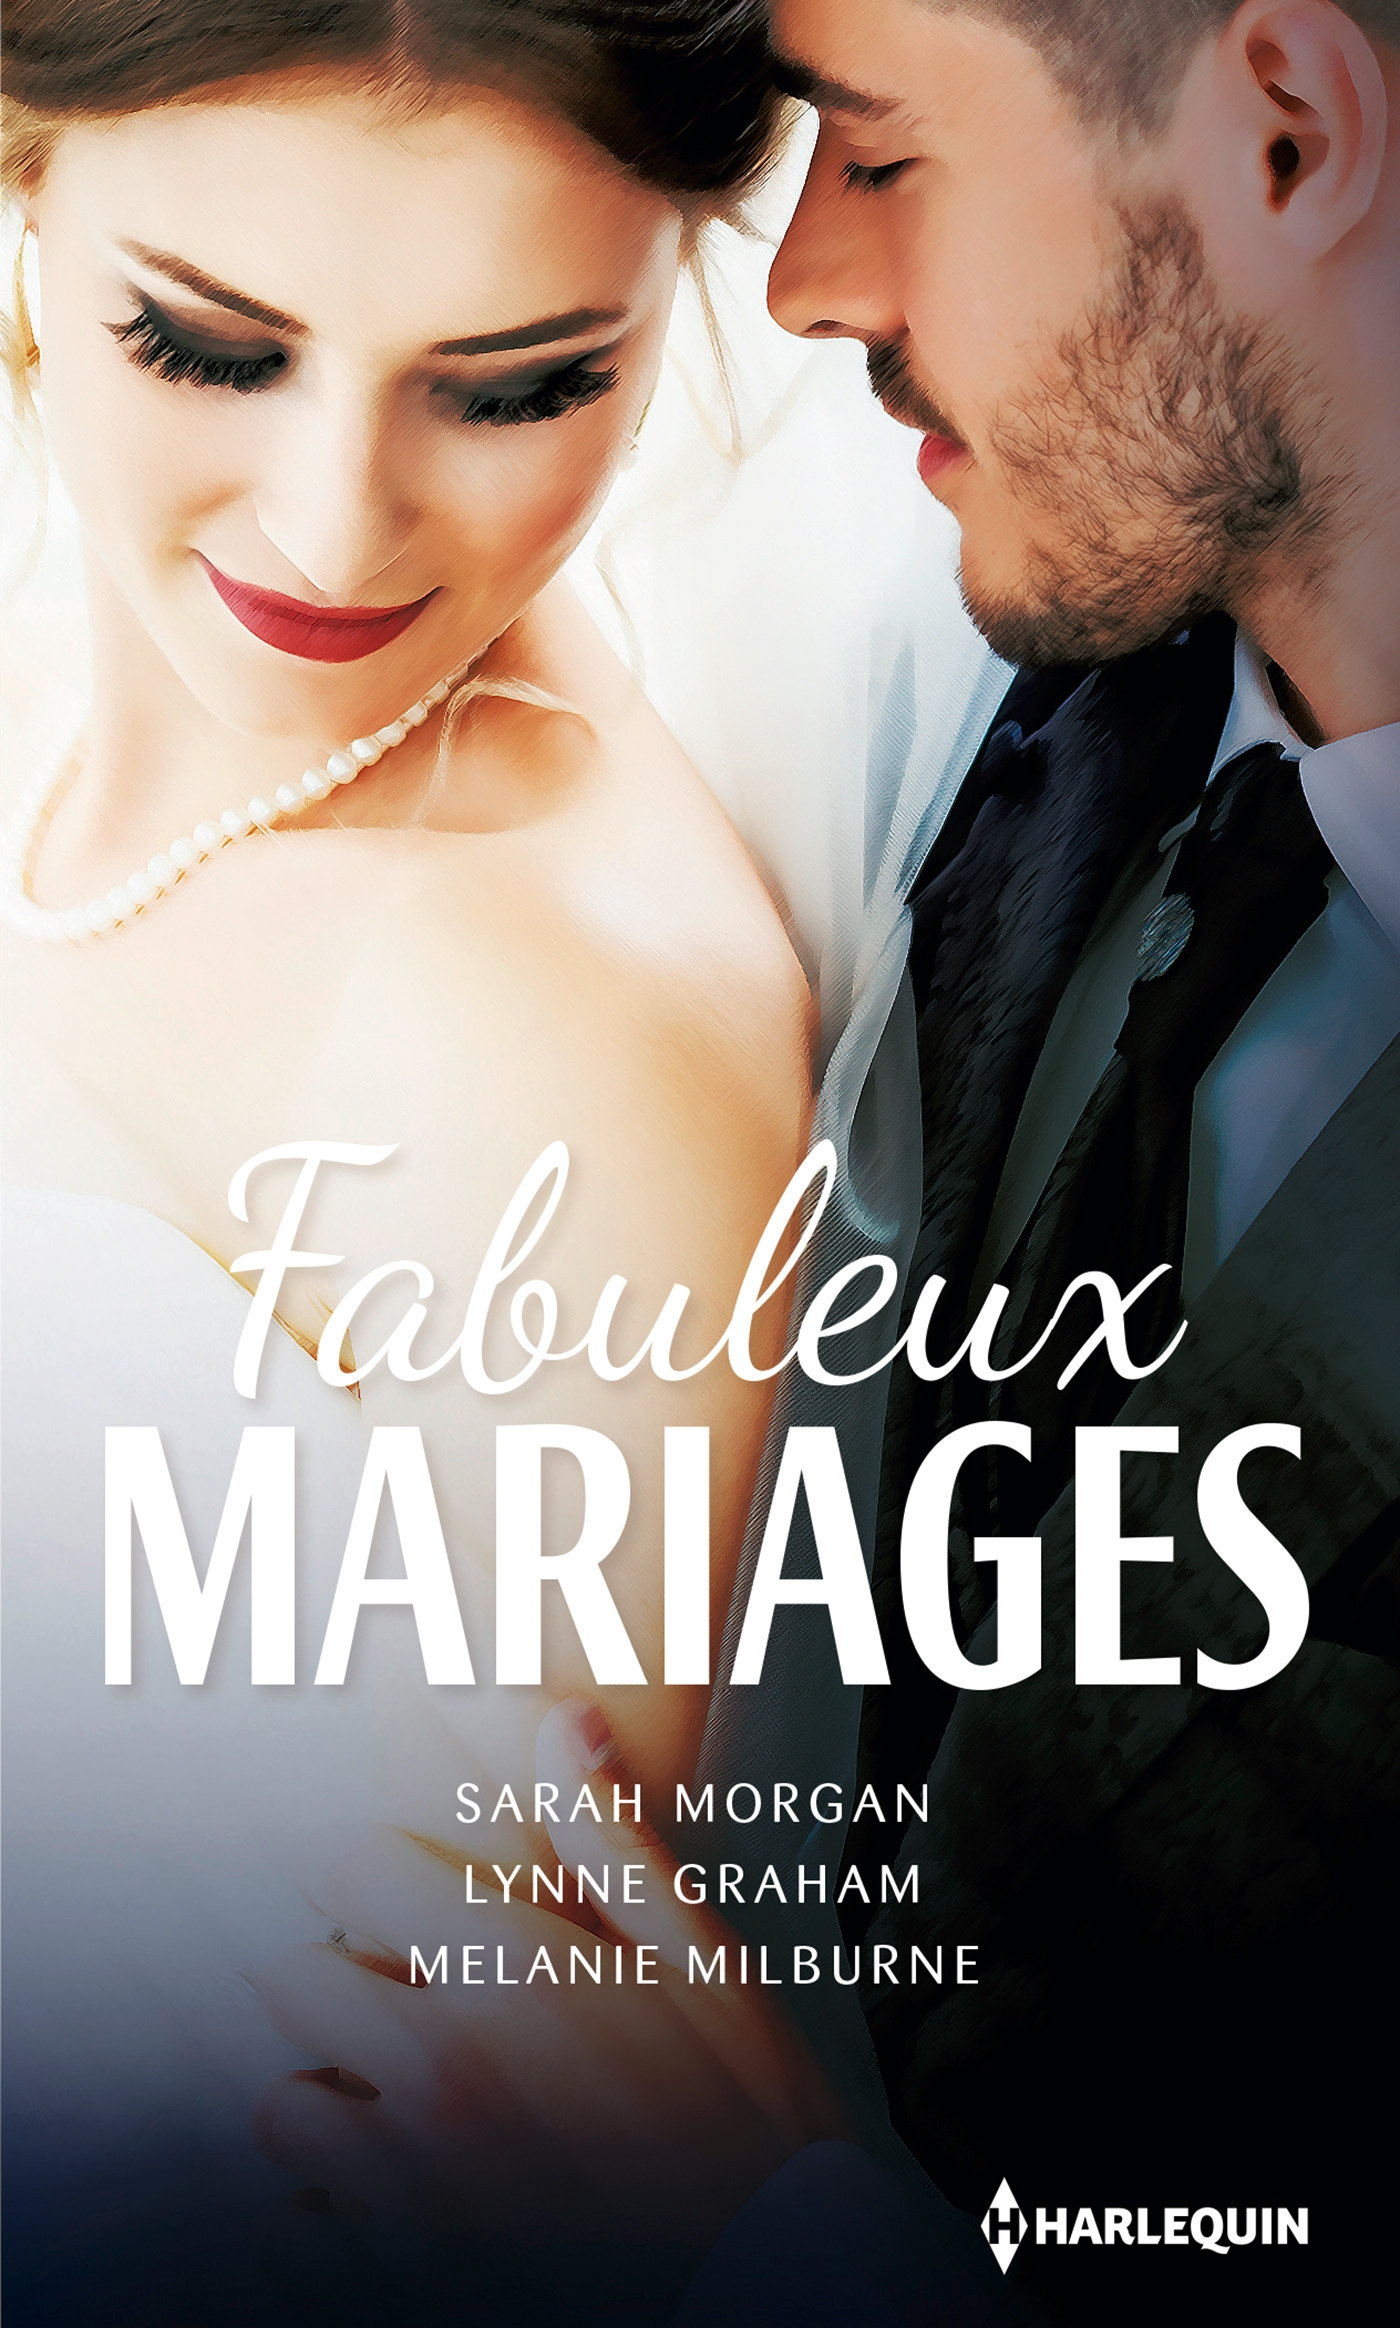 Fabuleux mariages